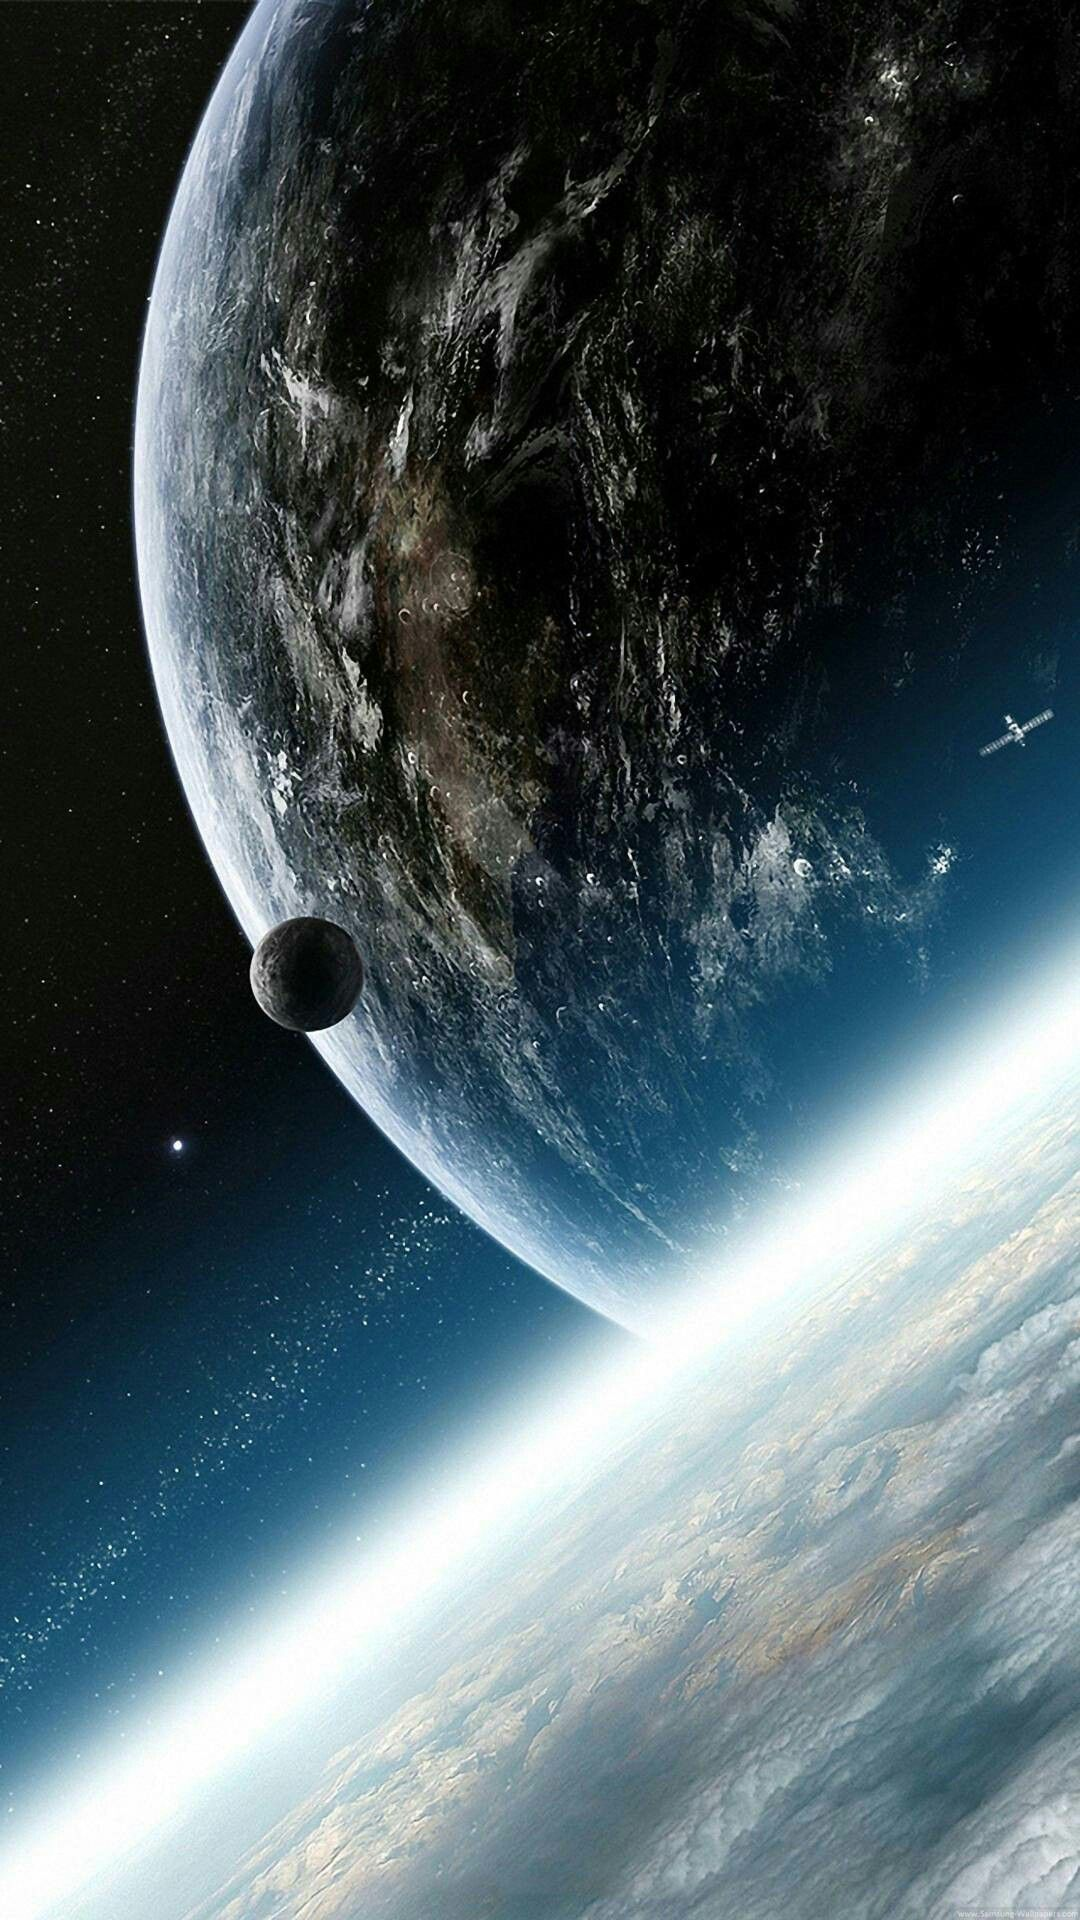 Outer space, Atmosphere, Astronomical object, Space